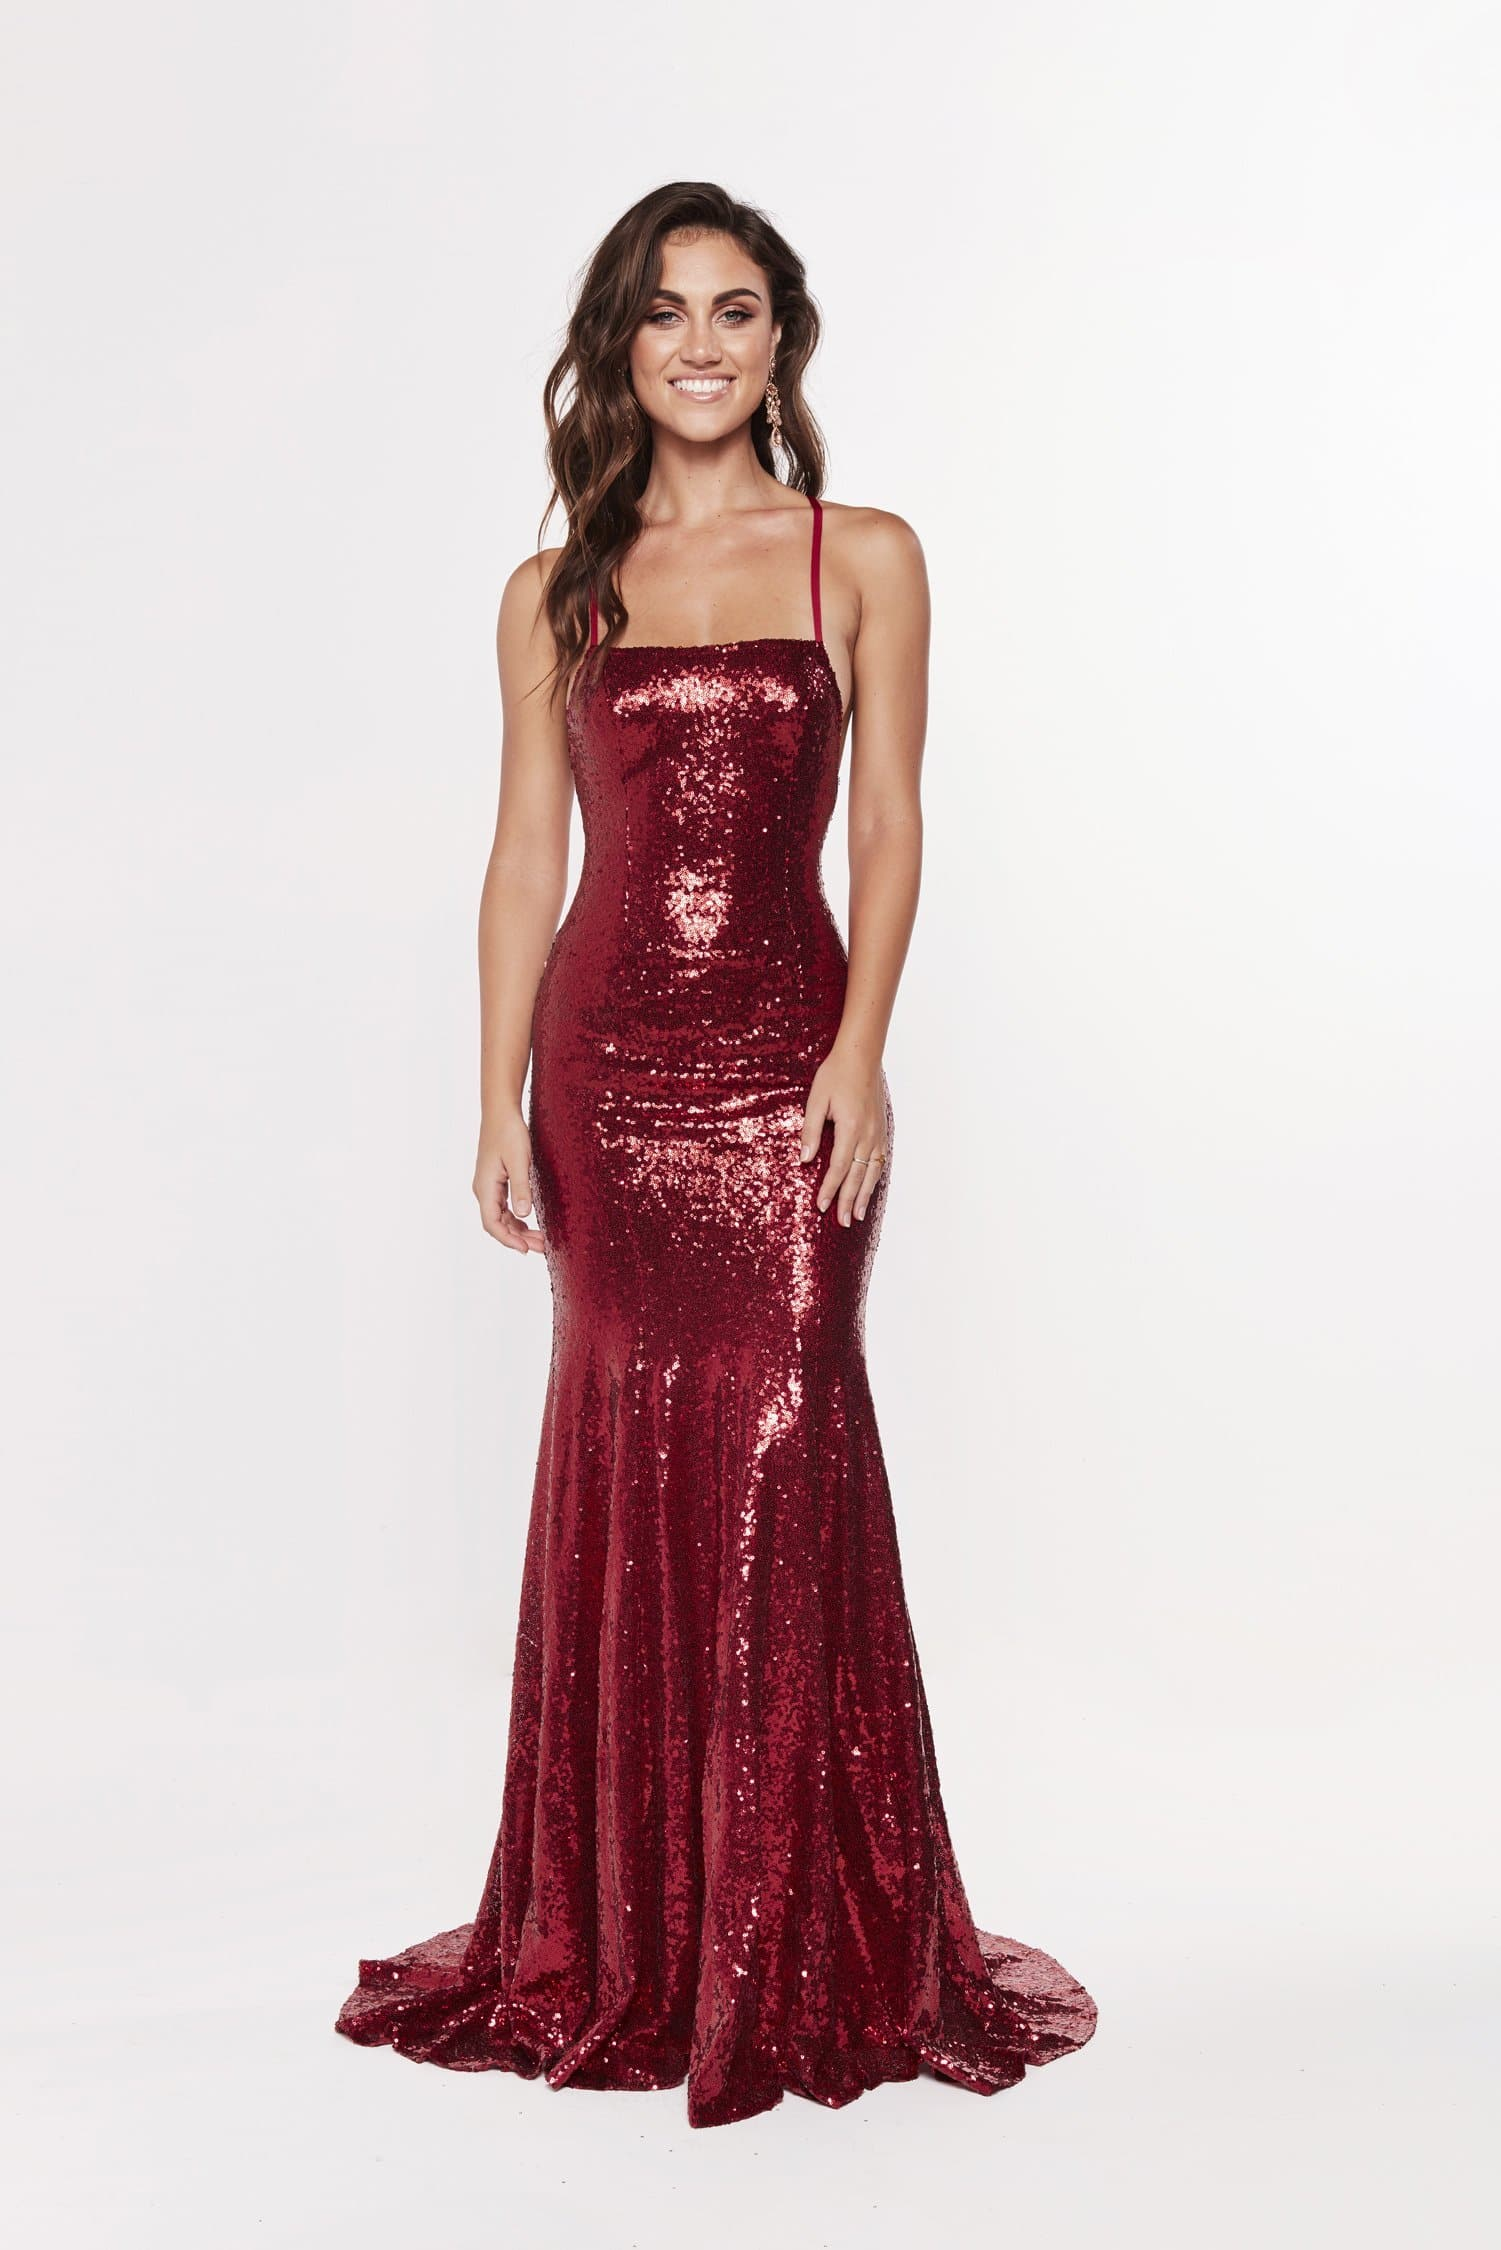 A&N Luxe Esmee Sequin Lace Up Gown - Deep Red